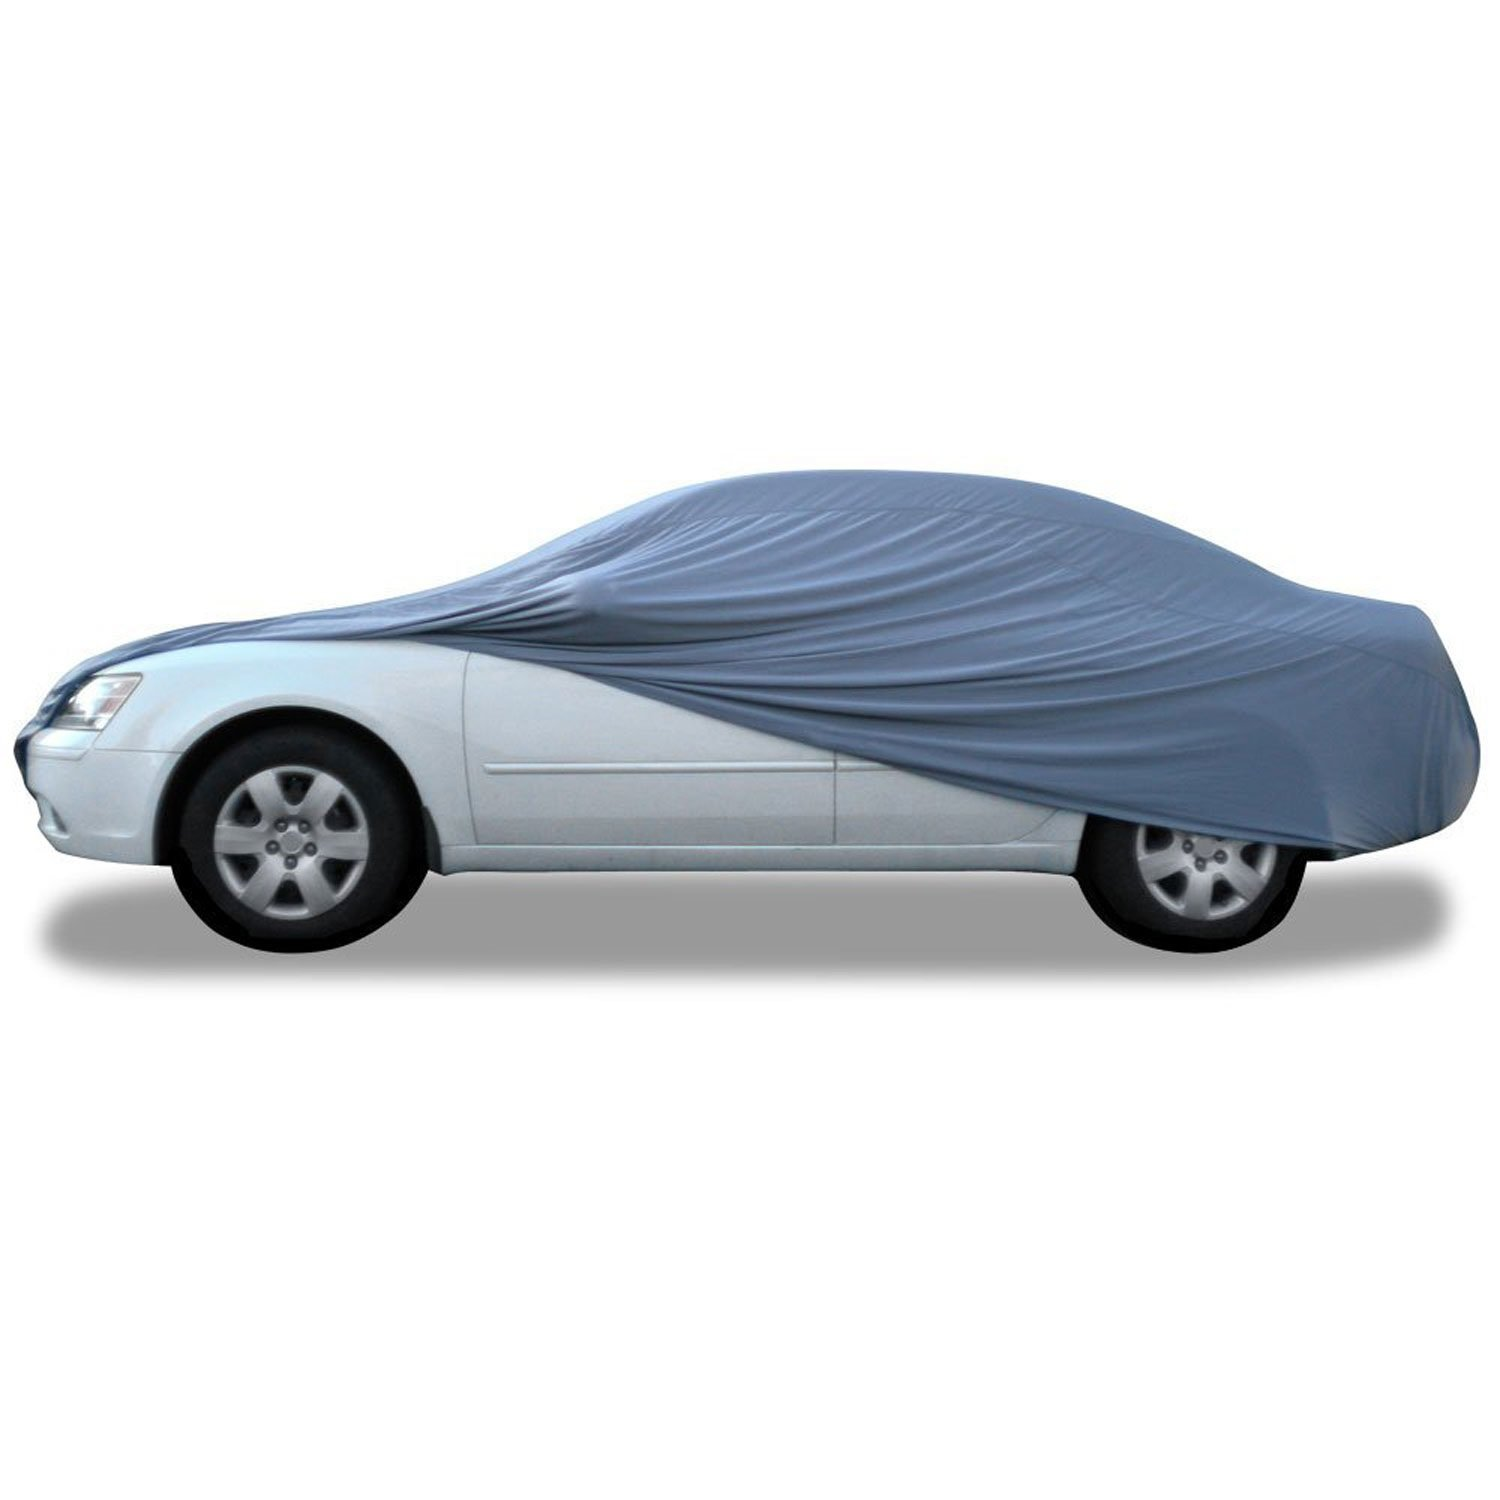 "Budge GSC-3 Gray Car fits Cars up to 200"" Car Cover, Luxury Indoor Protection, Soft Inner Lining, Breathable, Dustproof"